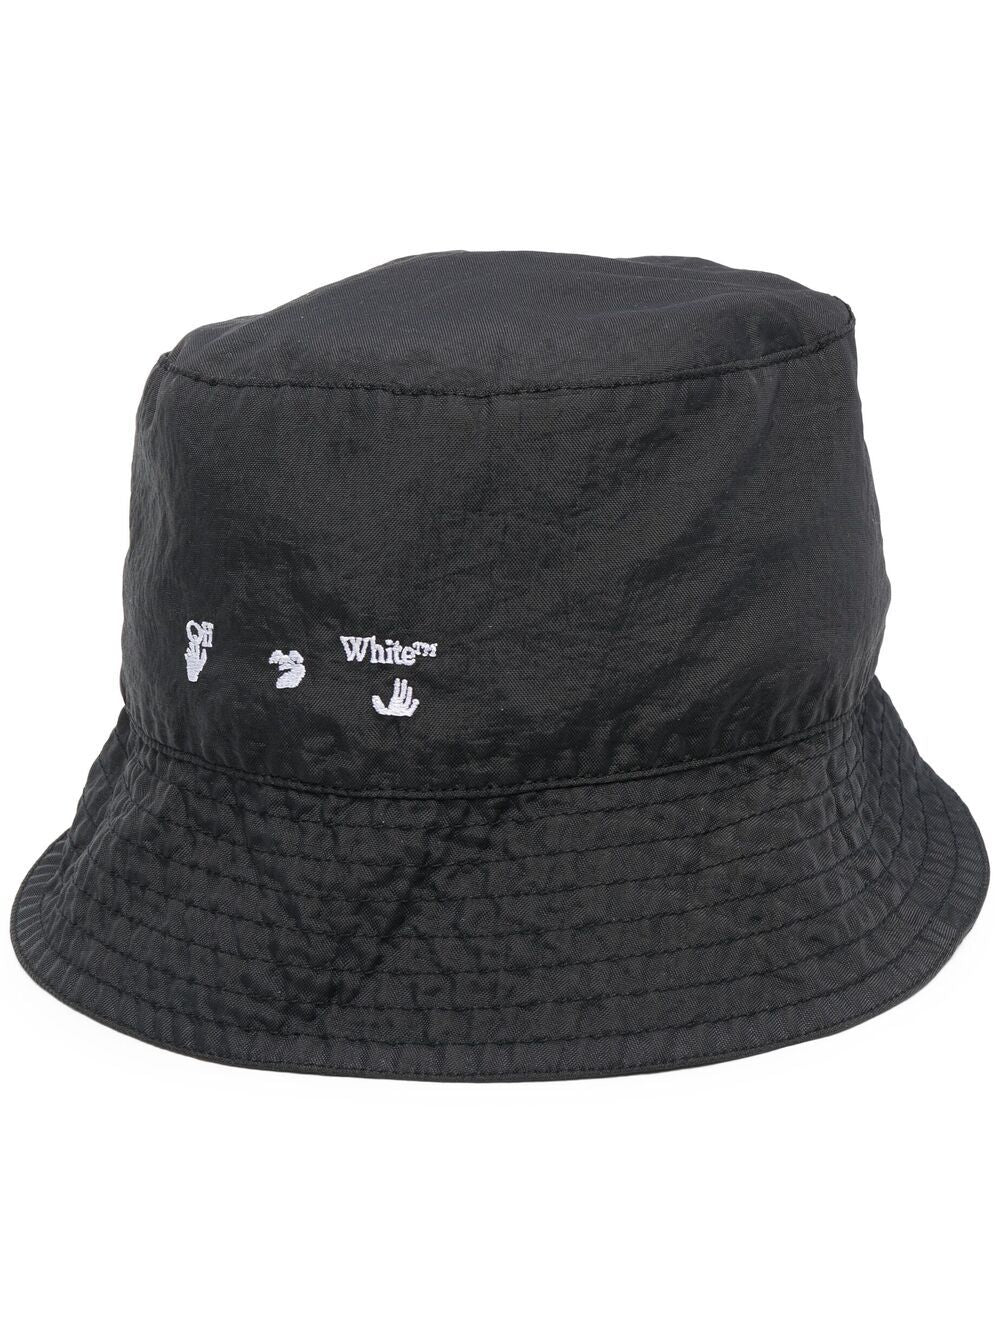 OFF-WHITE MEN OW LOGO BUCKET HAT